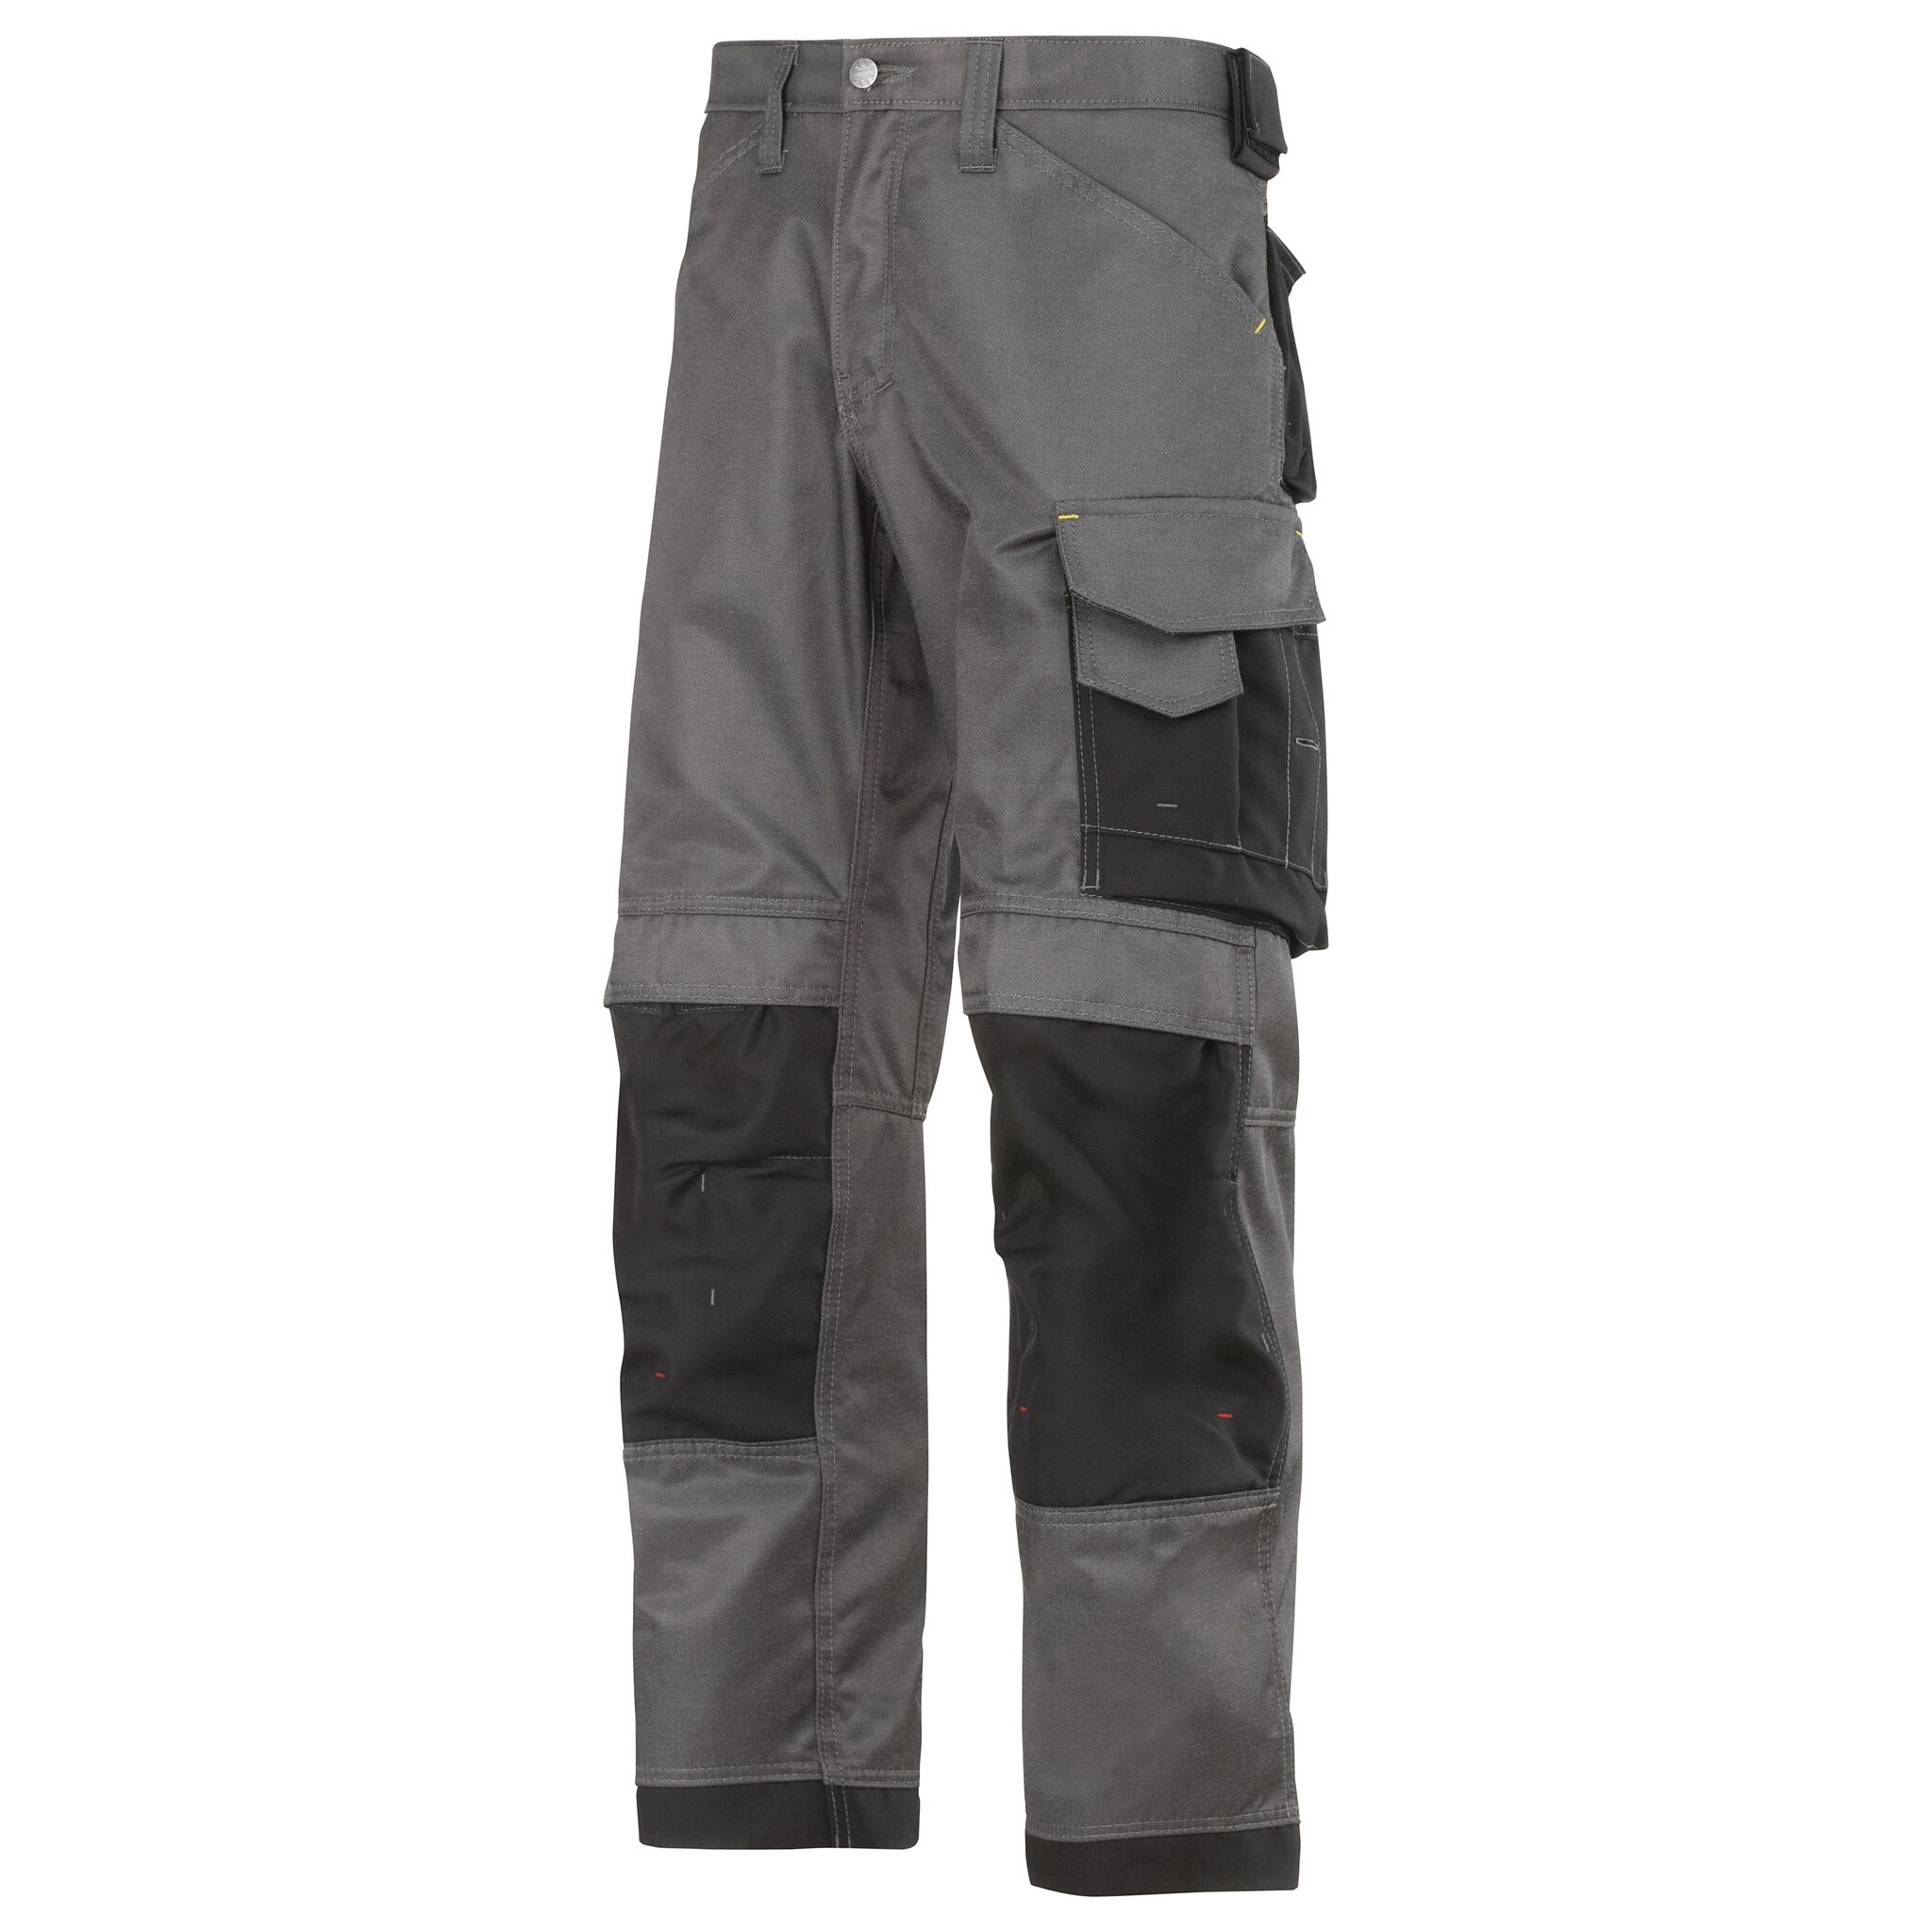 Snickers Mens DuraTwill Craftsmen Non Holster Trousers (38S) (Muted Black/Black)